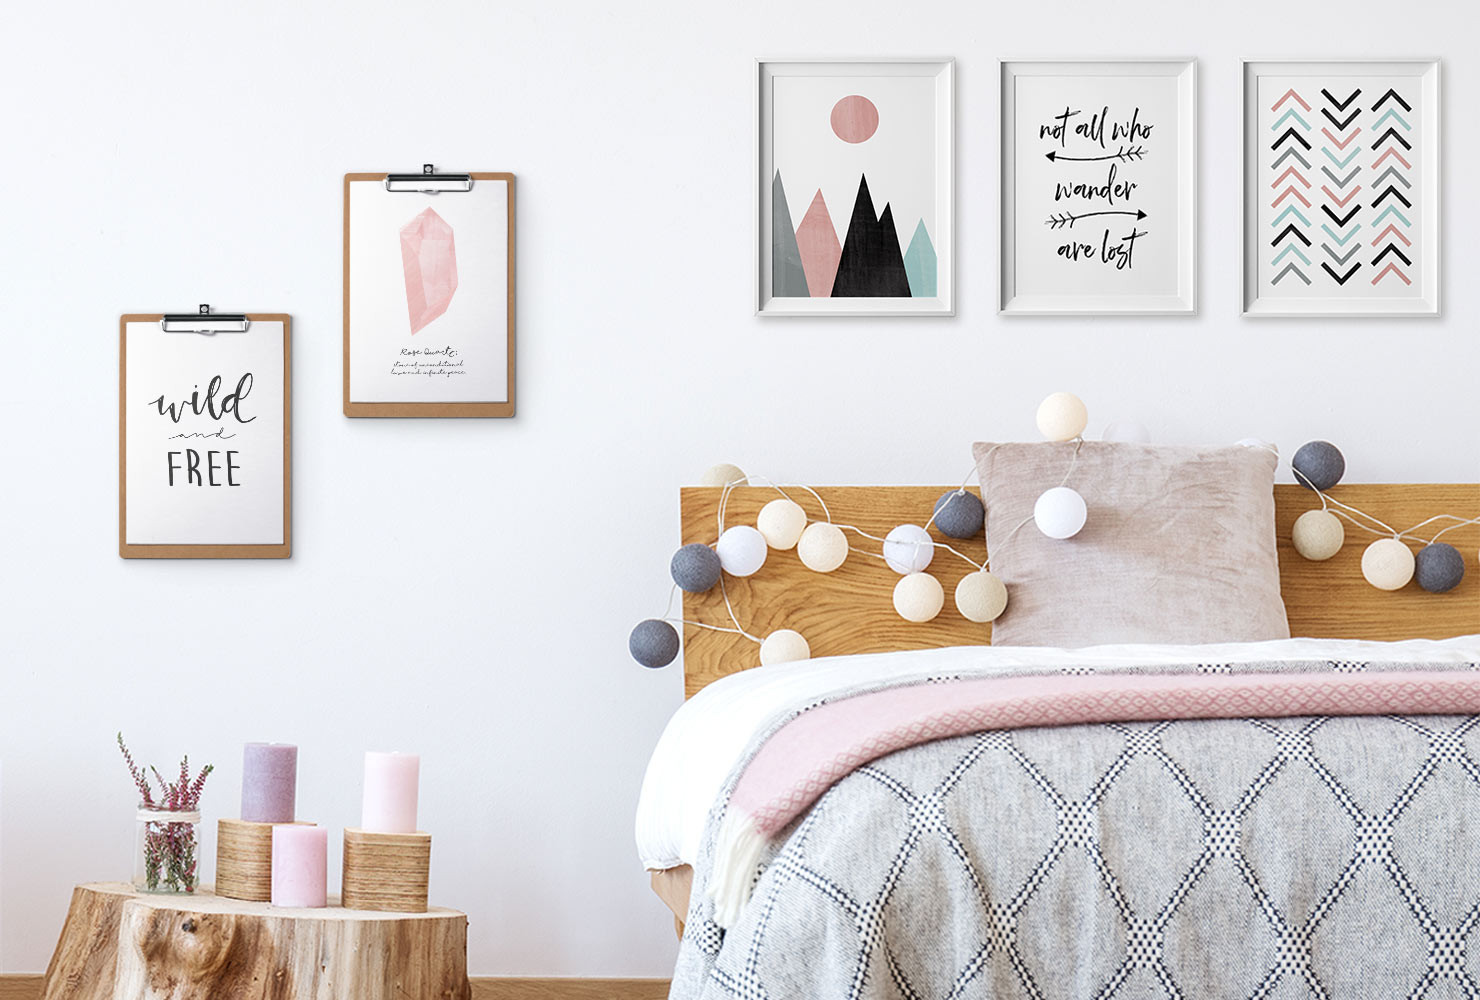 Wall Art Ideas Bedroom 24 Diy Bedroom Decor Ideas to Inspire You with Printables